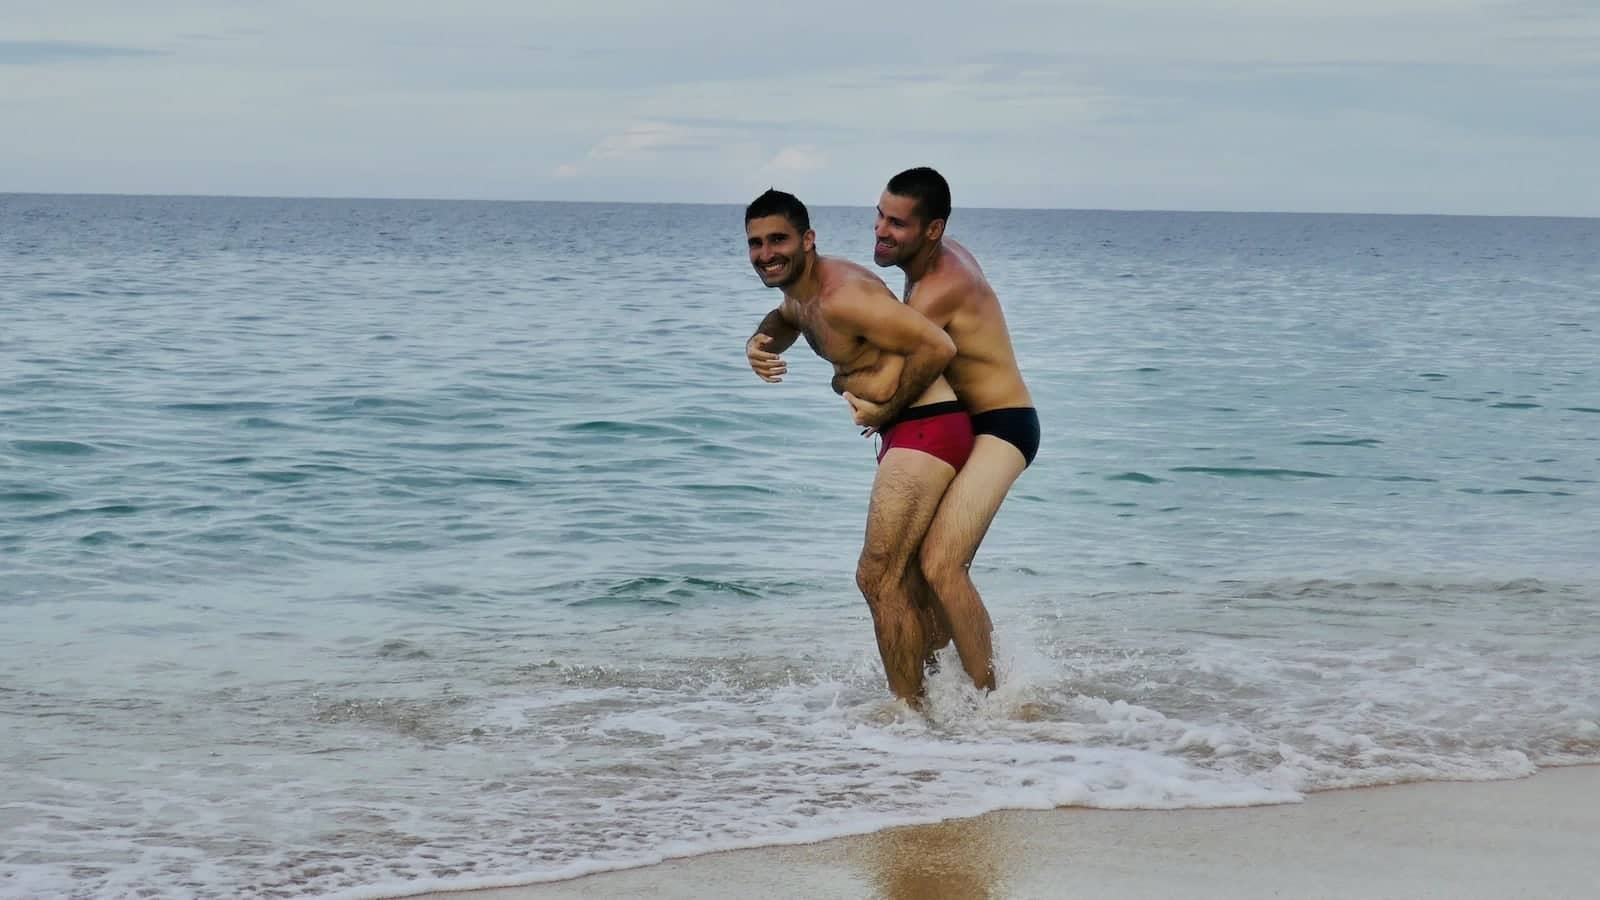 Es cavallet beach is where all the gays go in the summer to show off their speedos